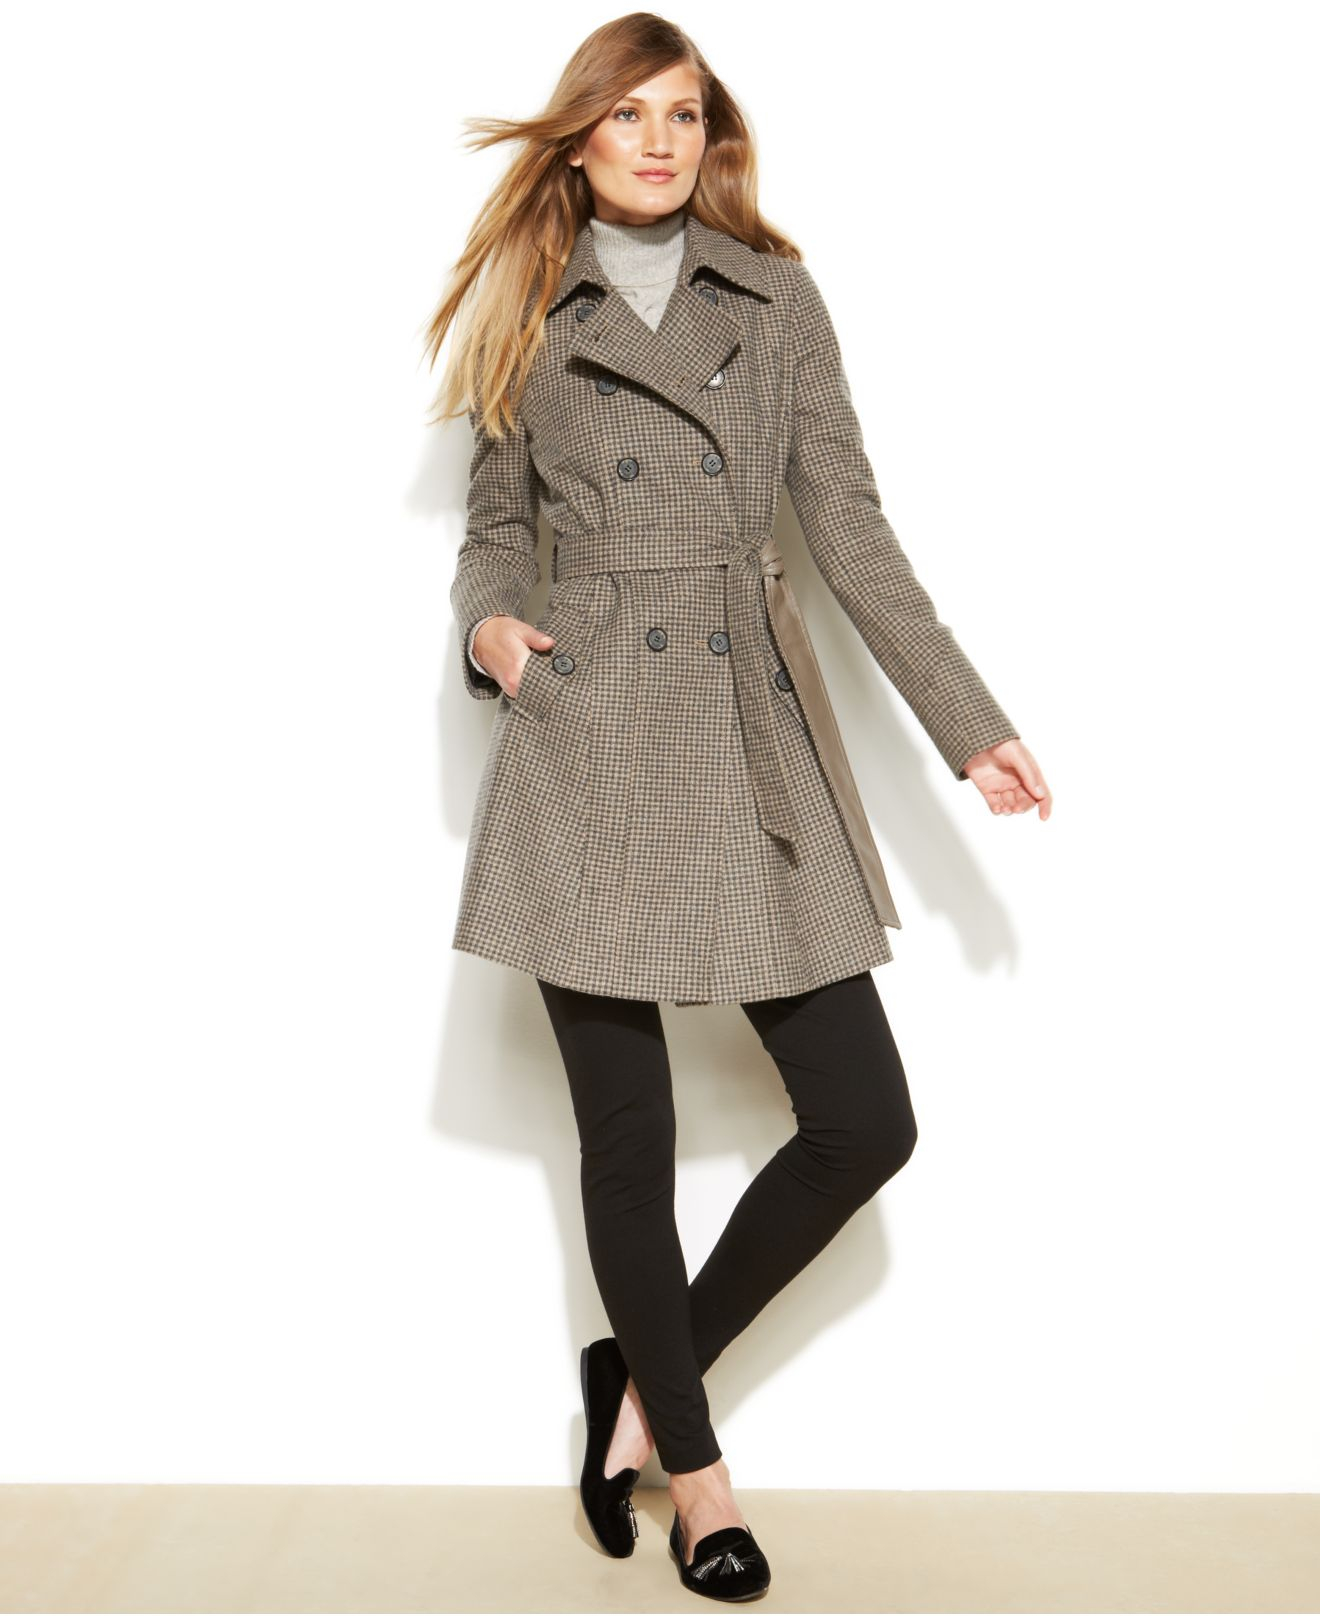 Dkny Petite Belted Wool-Blend Trench Coat in Brown | Lyst